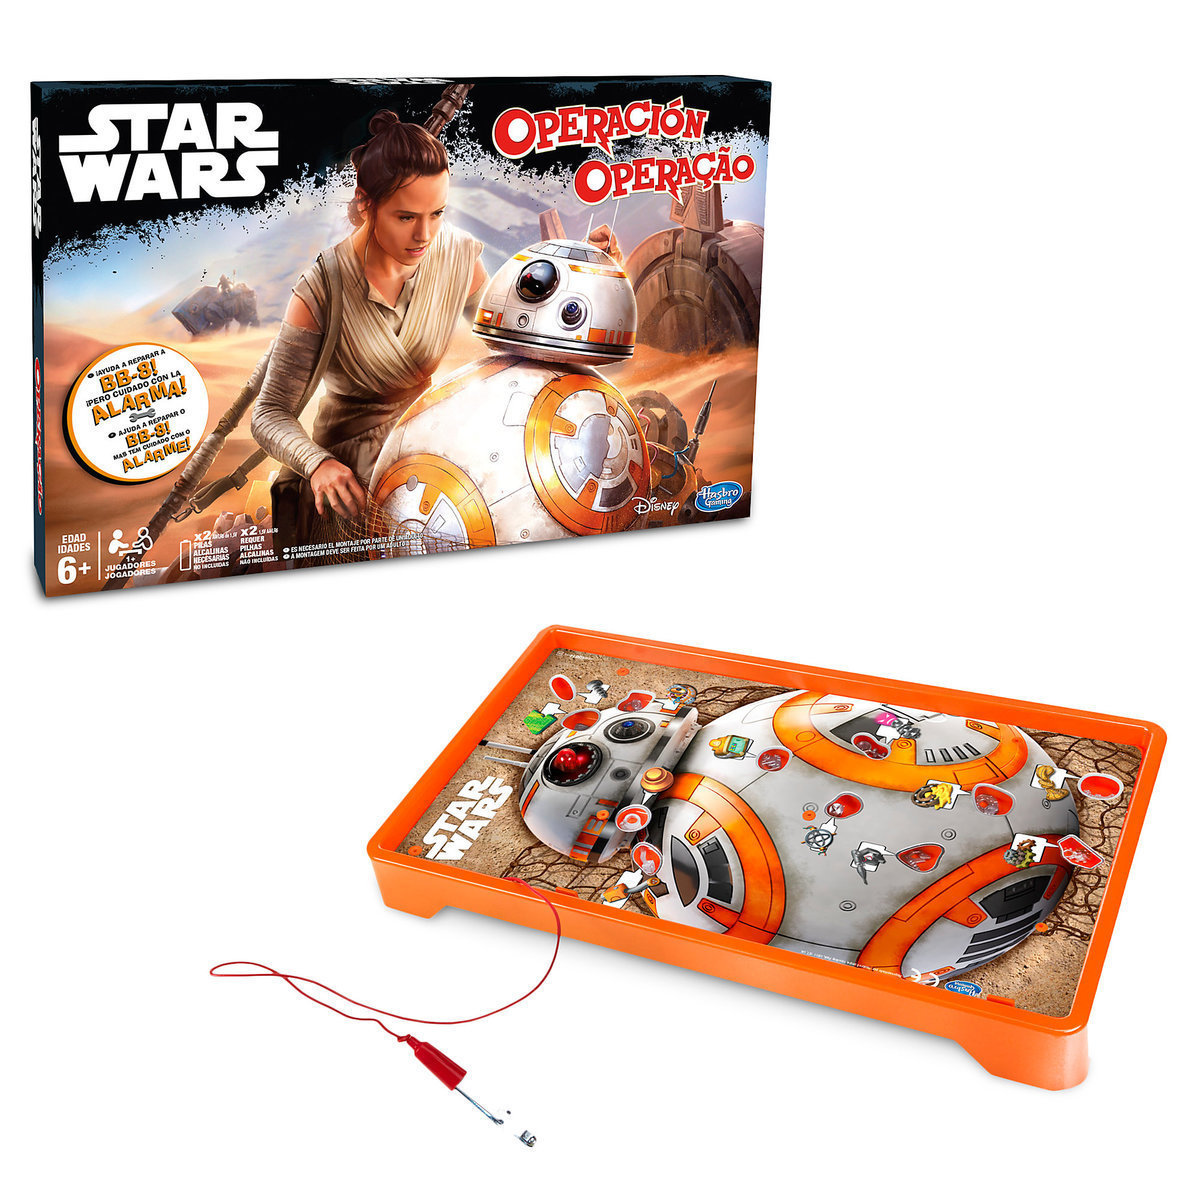 Star Wars BB-8 Operation Game by Hasbro